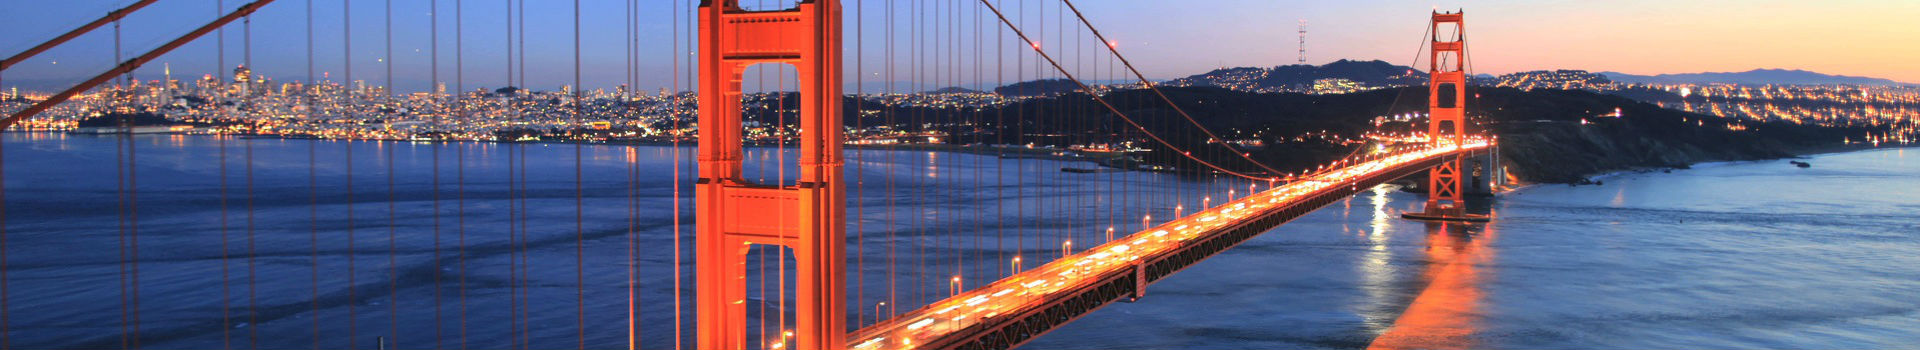 golden_gate_bridge_sunset_lights_350